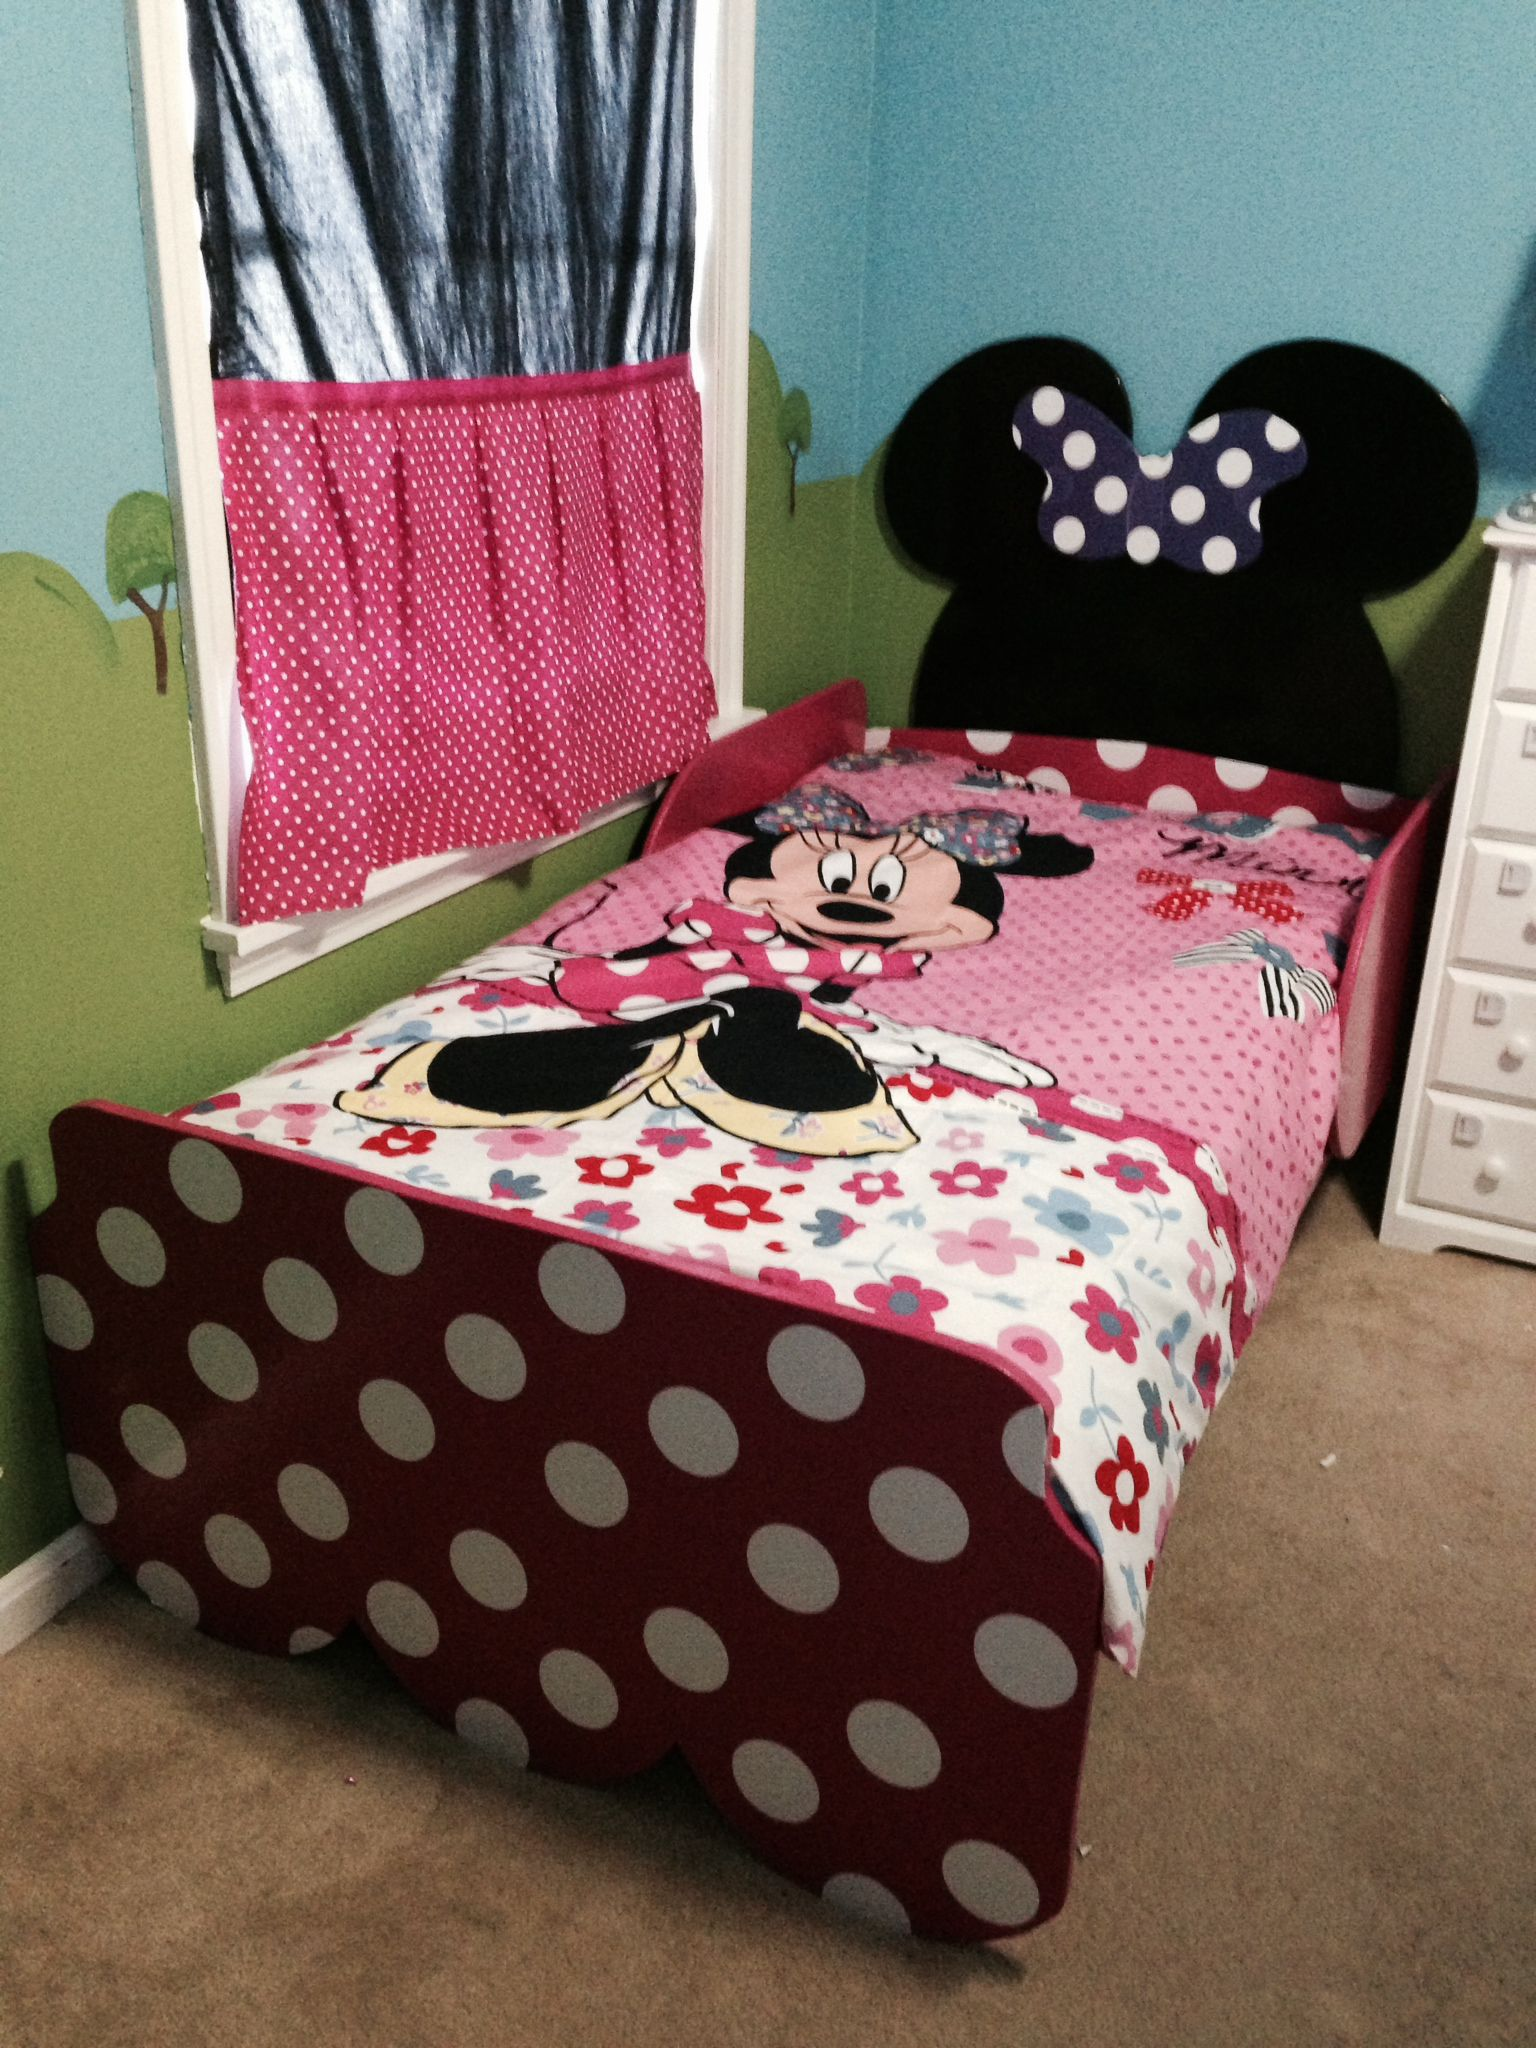 minnie bed micky minnie toddler room toddler rooms 16201 | 2c3750248d3d360bf66ee7e07a9d17da